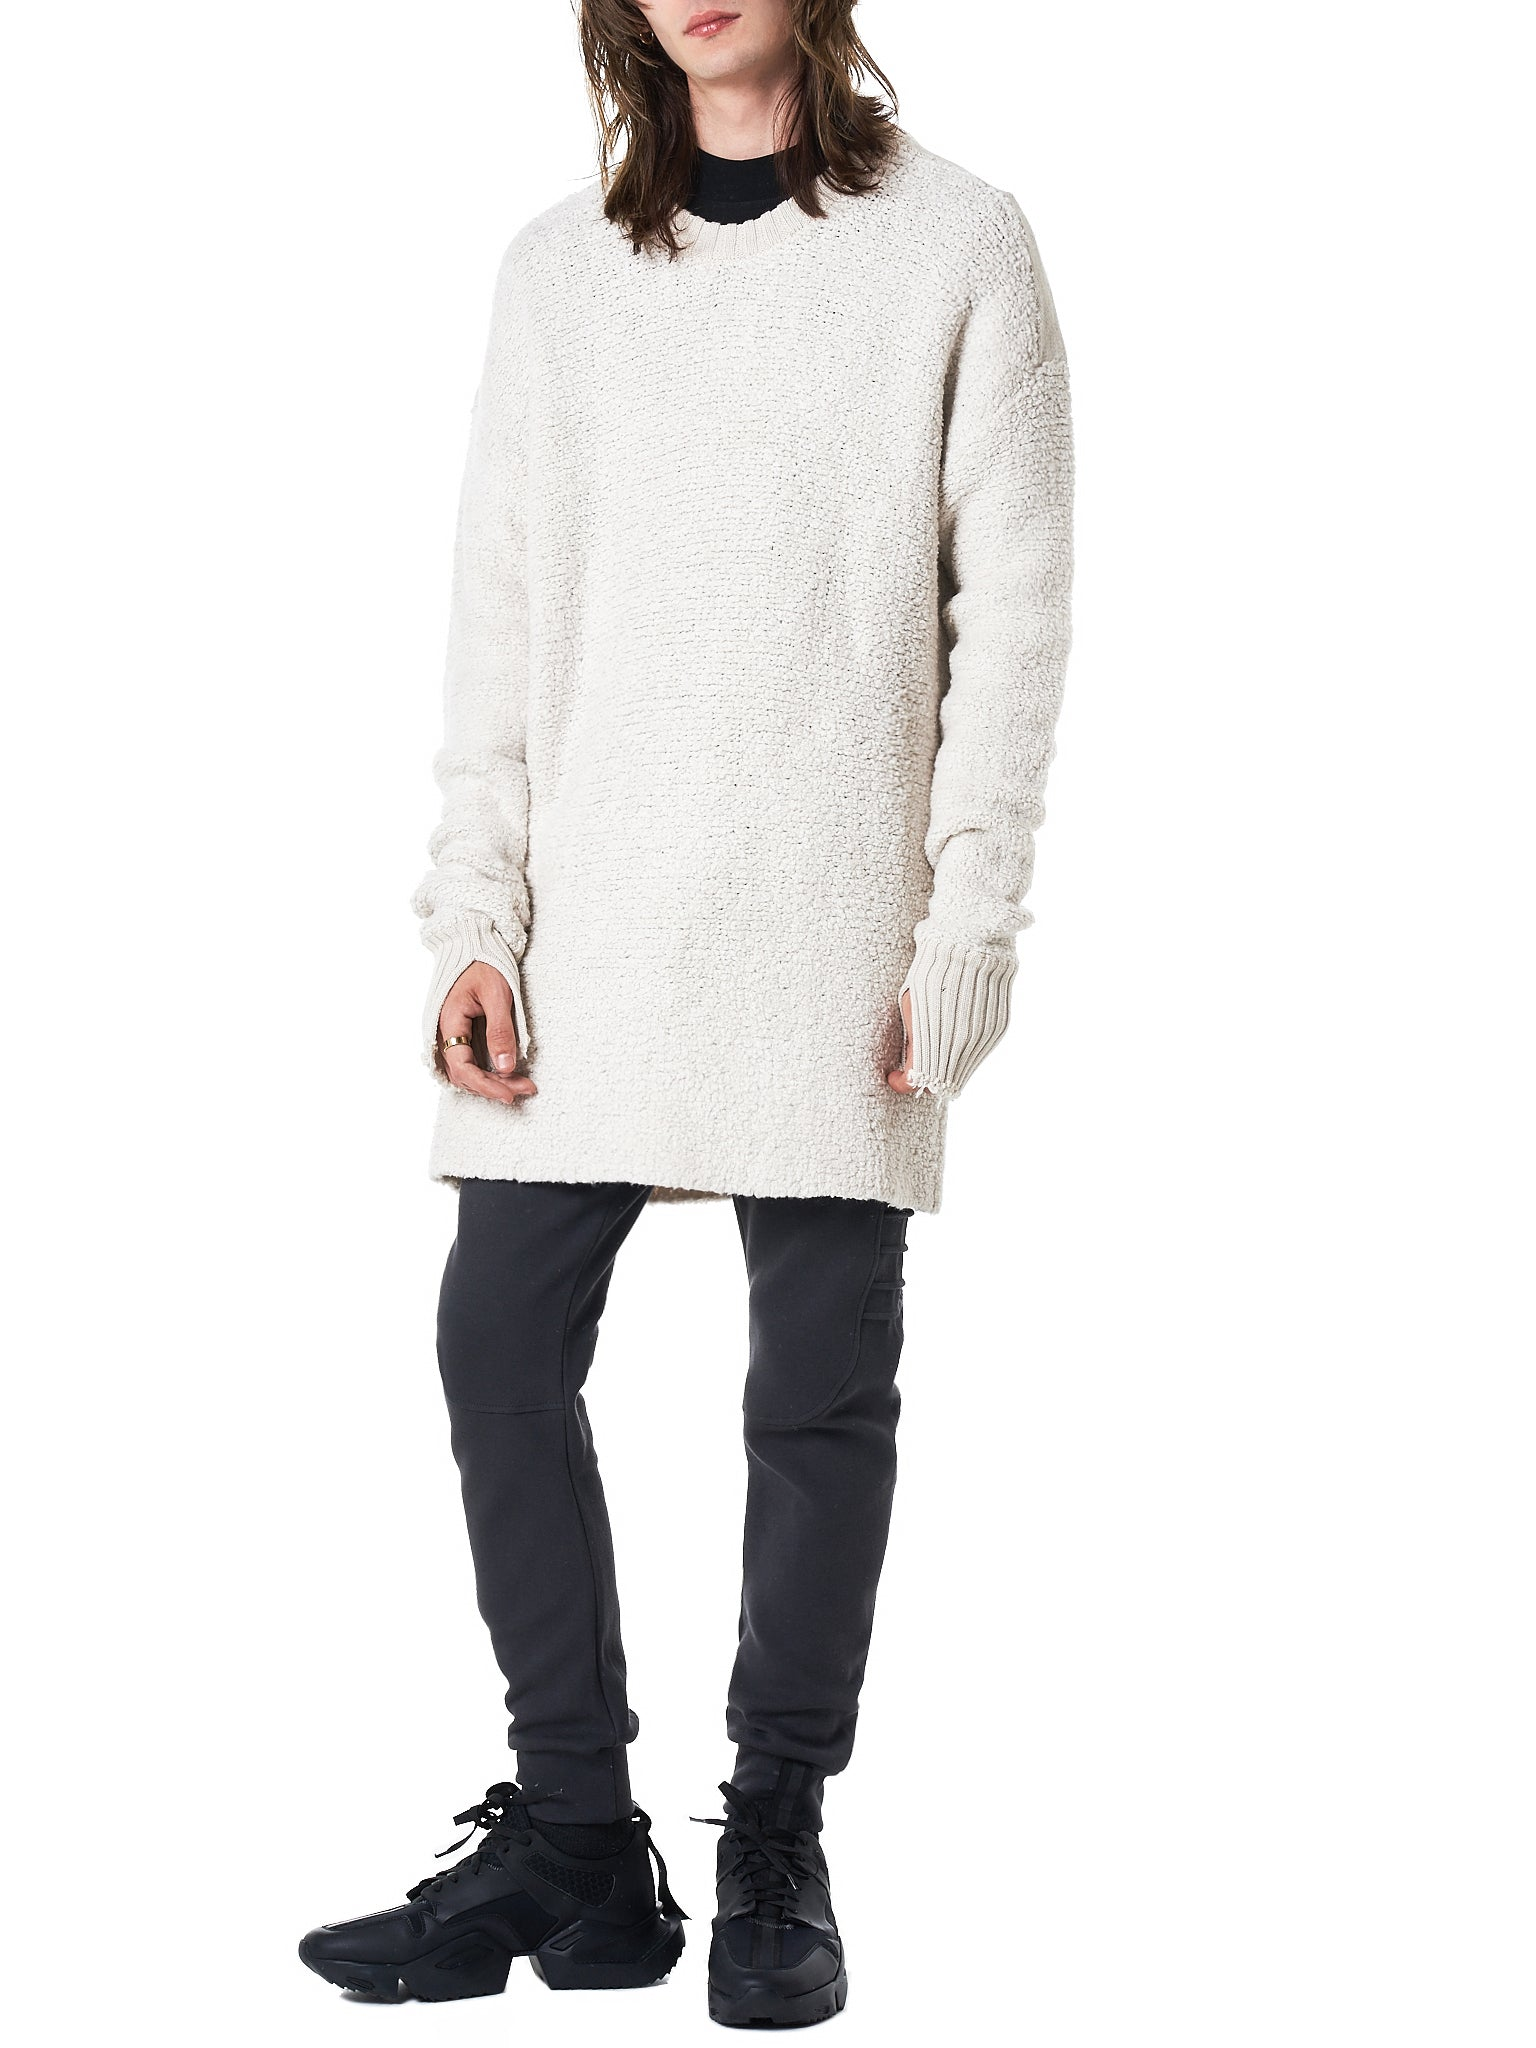 Lost & Found Rooms Sweater - Hlorenzo Style